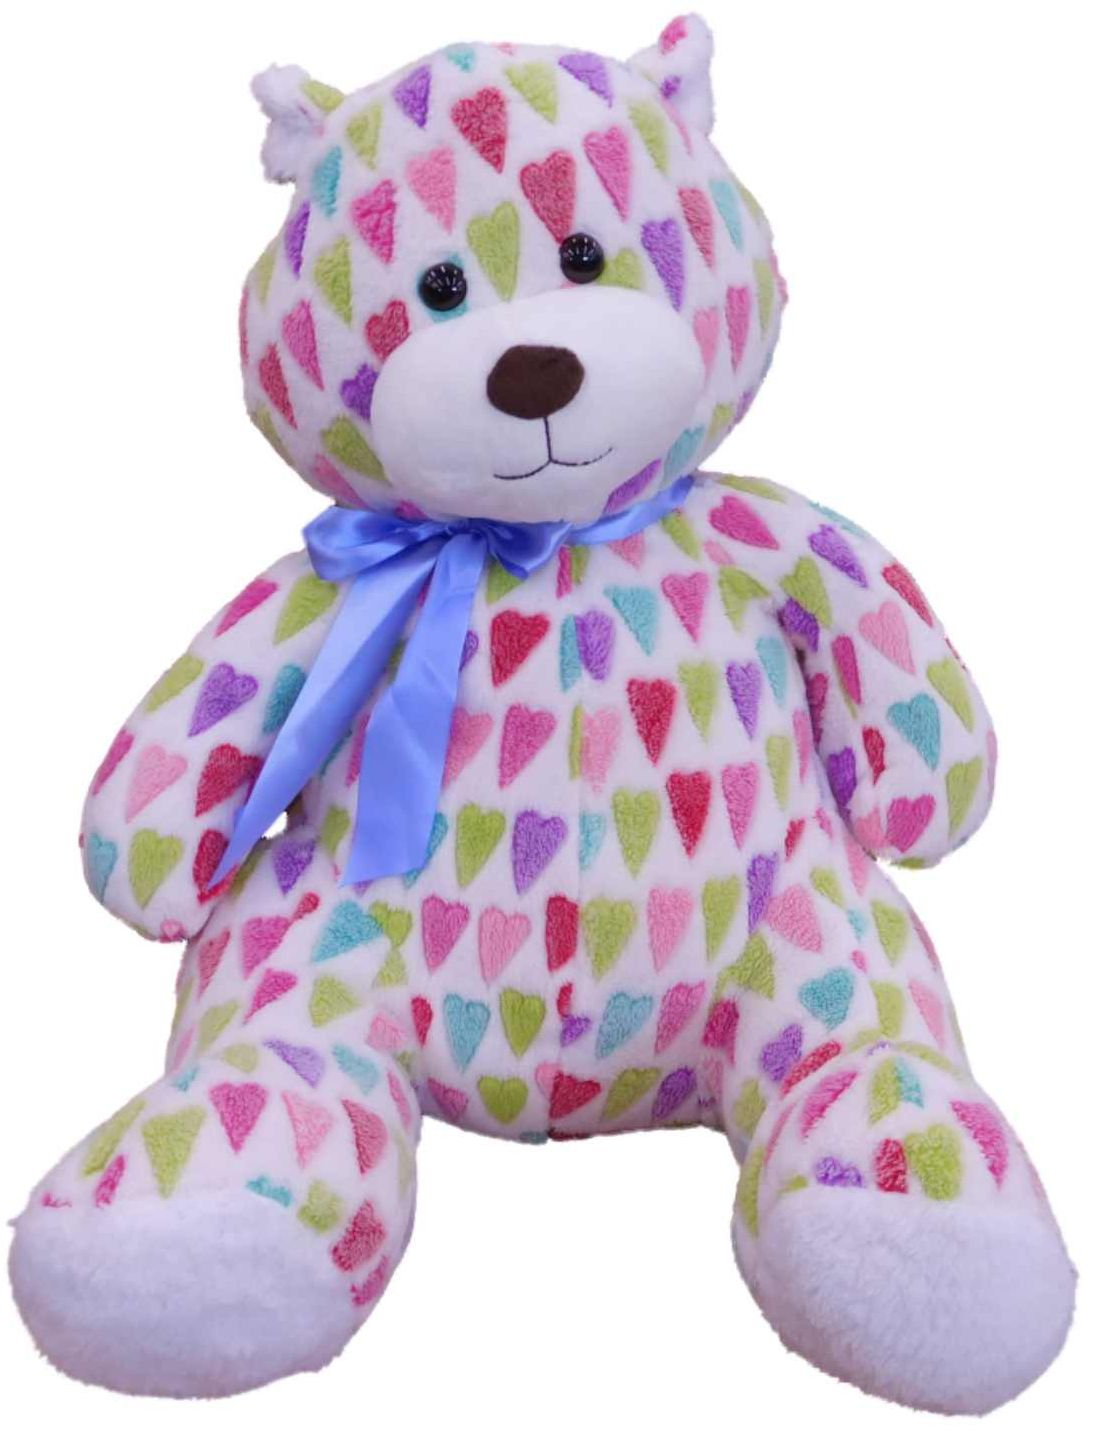 "Sweet Sprouts Colorful Hearts Love Teddy Bear Stuffed Animal 21"" Plush Giant Pal by Sweet Sprouts"